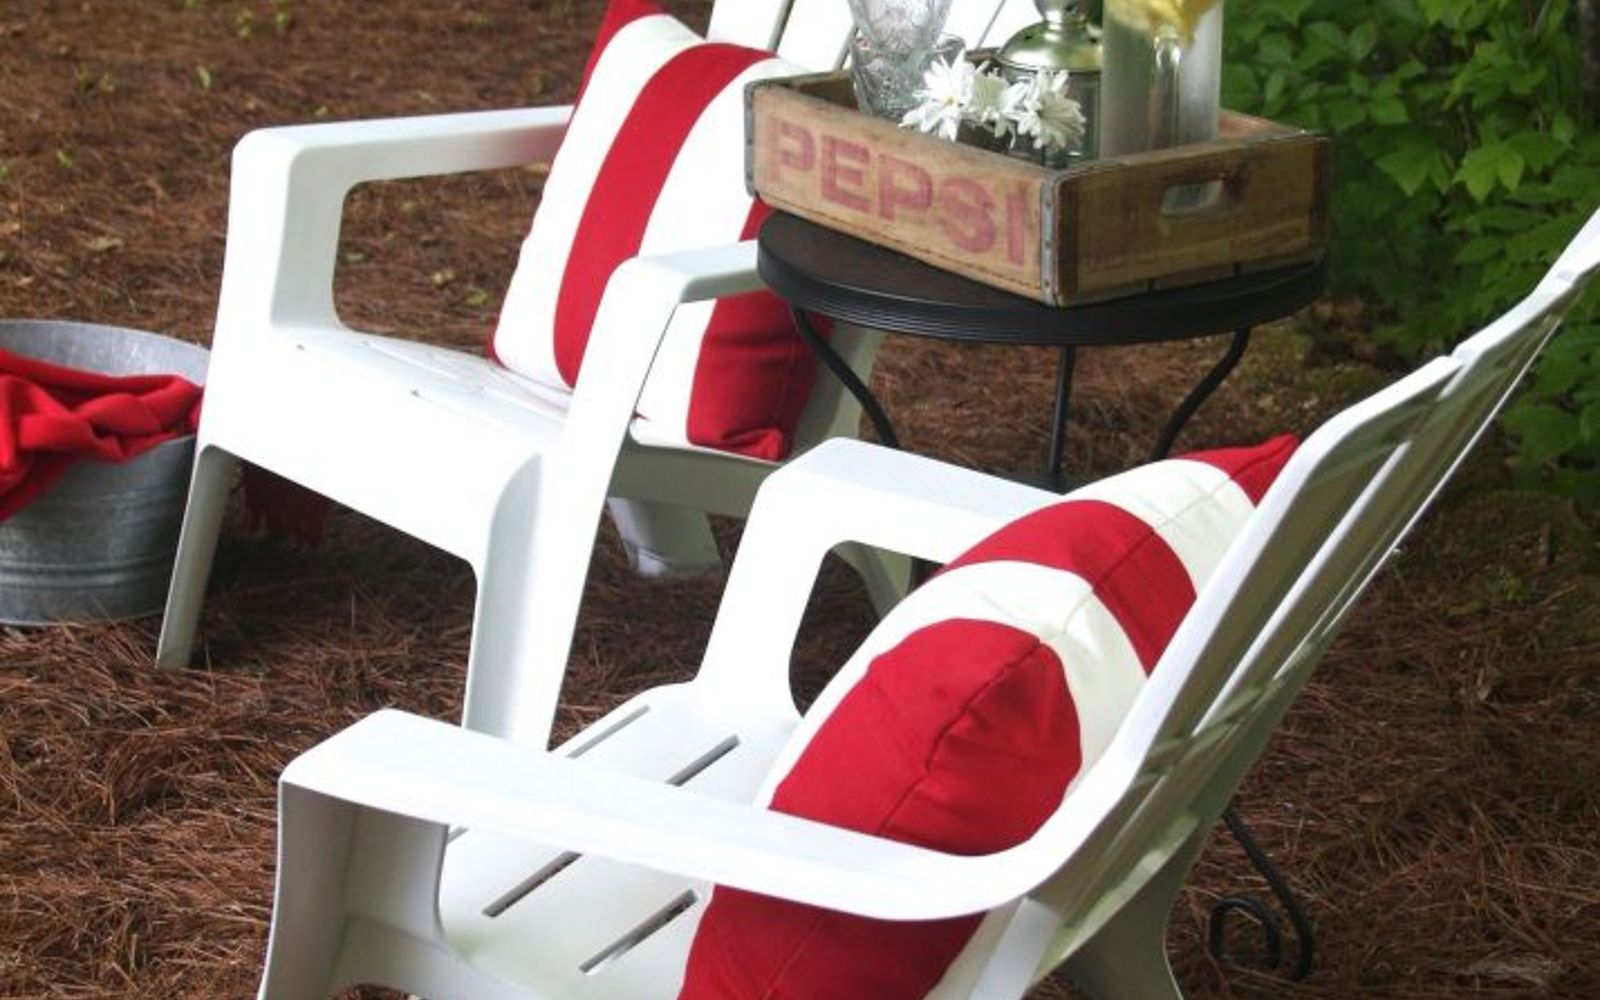 s 12 pool chair ideas we never would have thought of, painted furniture, pool designs, Spray them white and shiny again